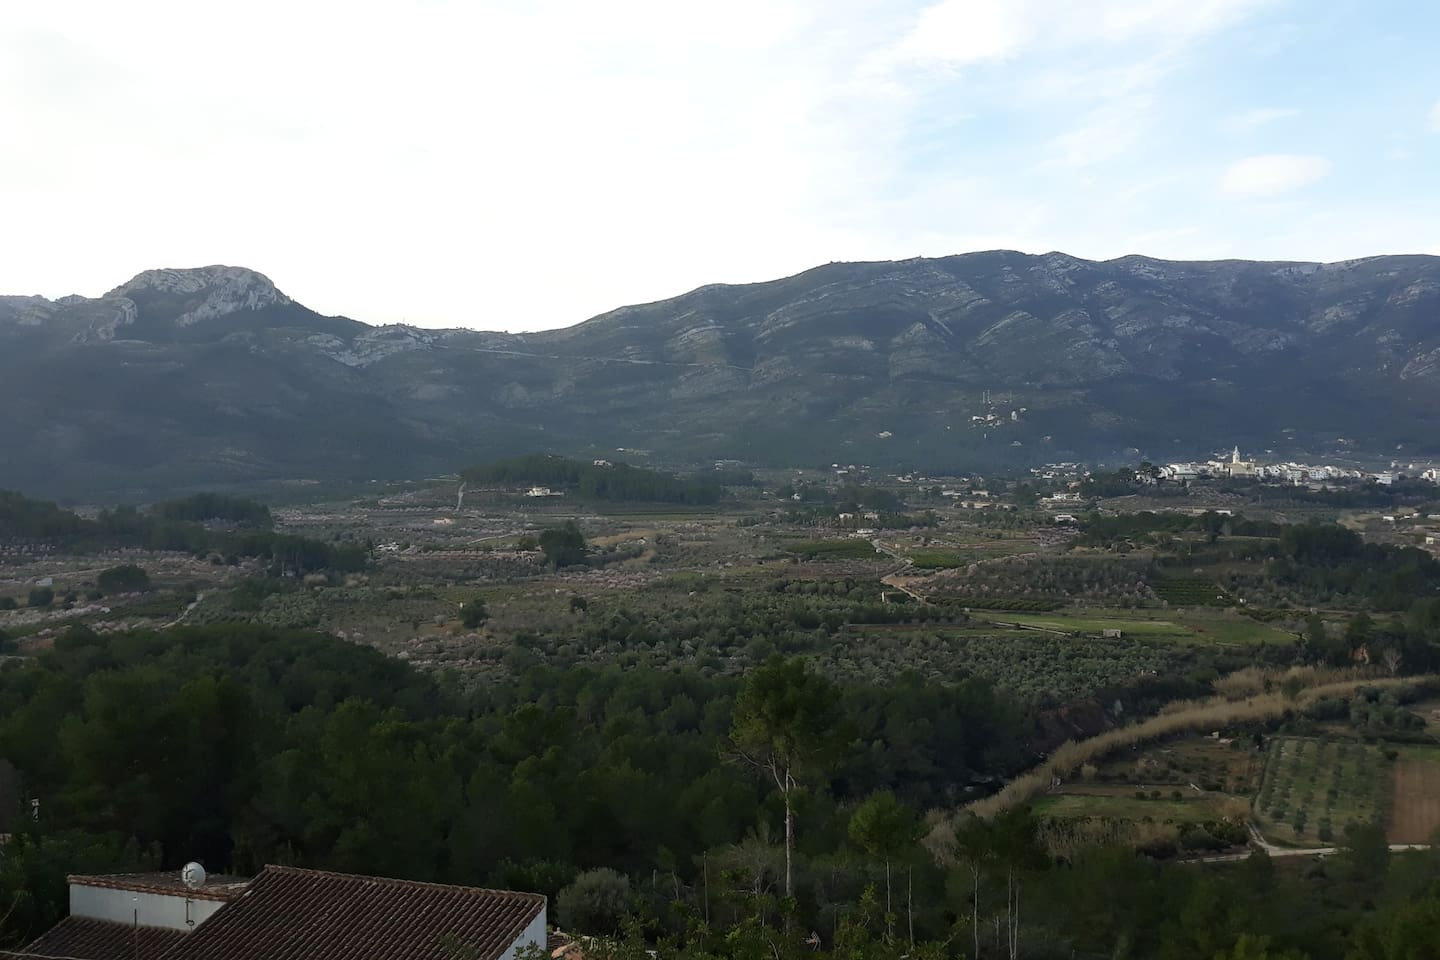 The Jalon Valley as seen from the apartment.